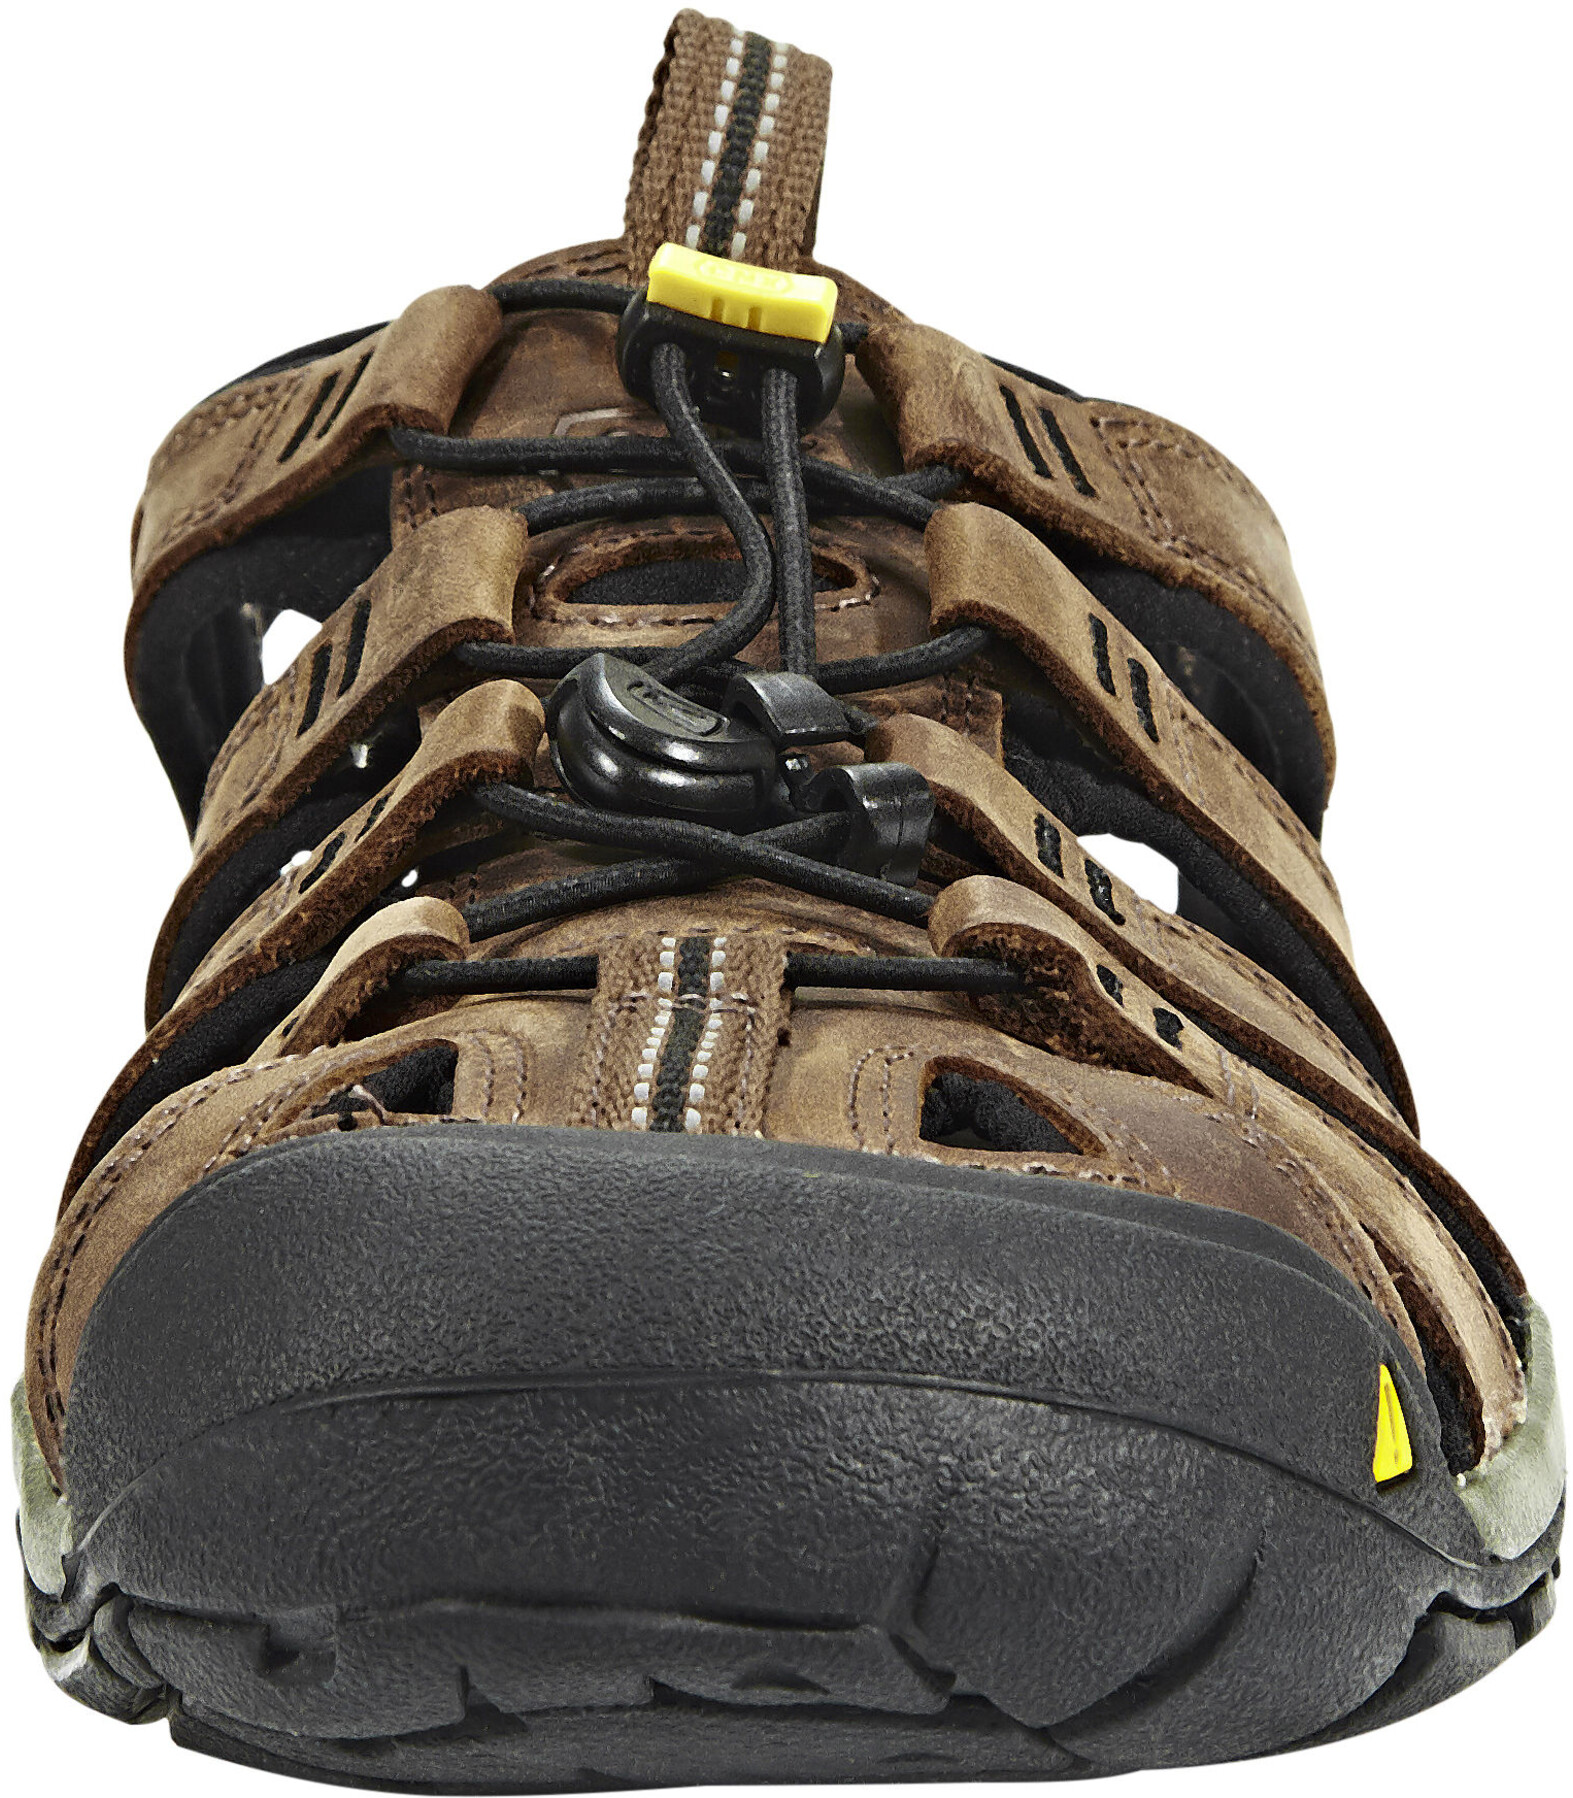 cc5689825f5 Keen Clearwater CNX Leather - Sandales Homme - marron sur CAMPZ !